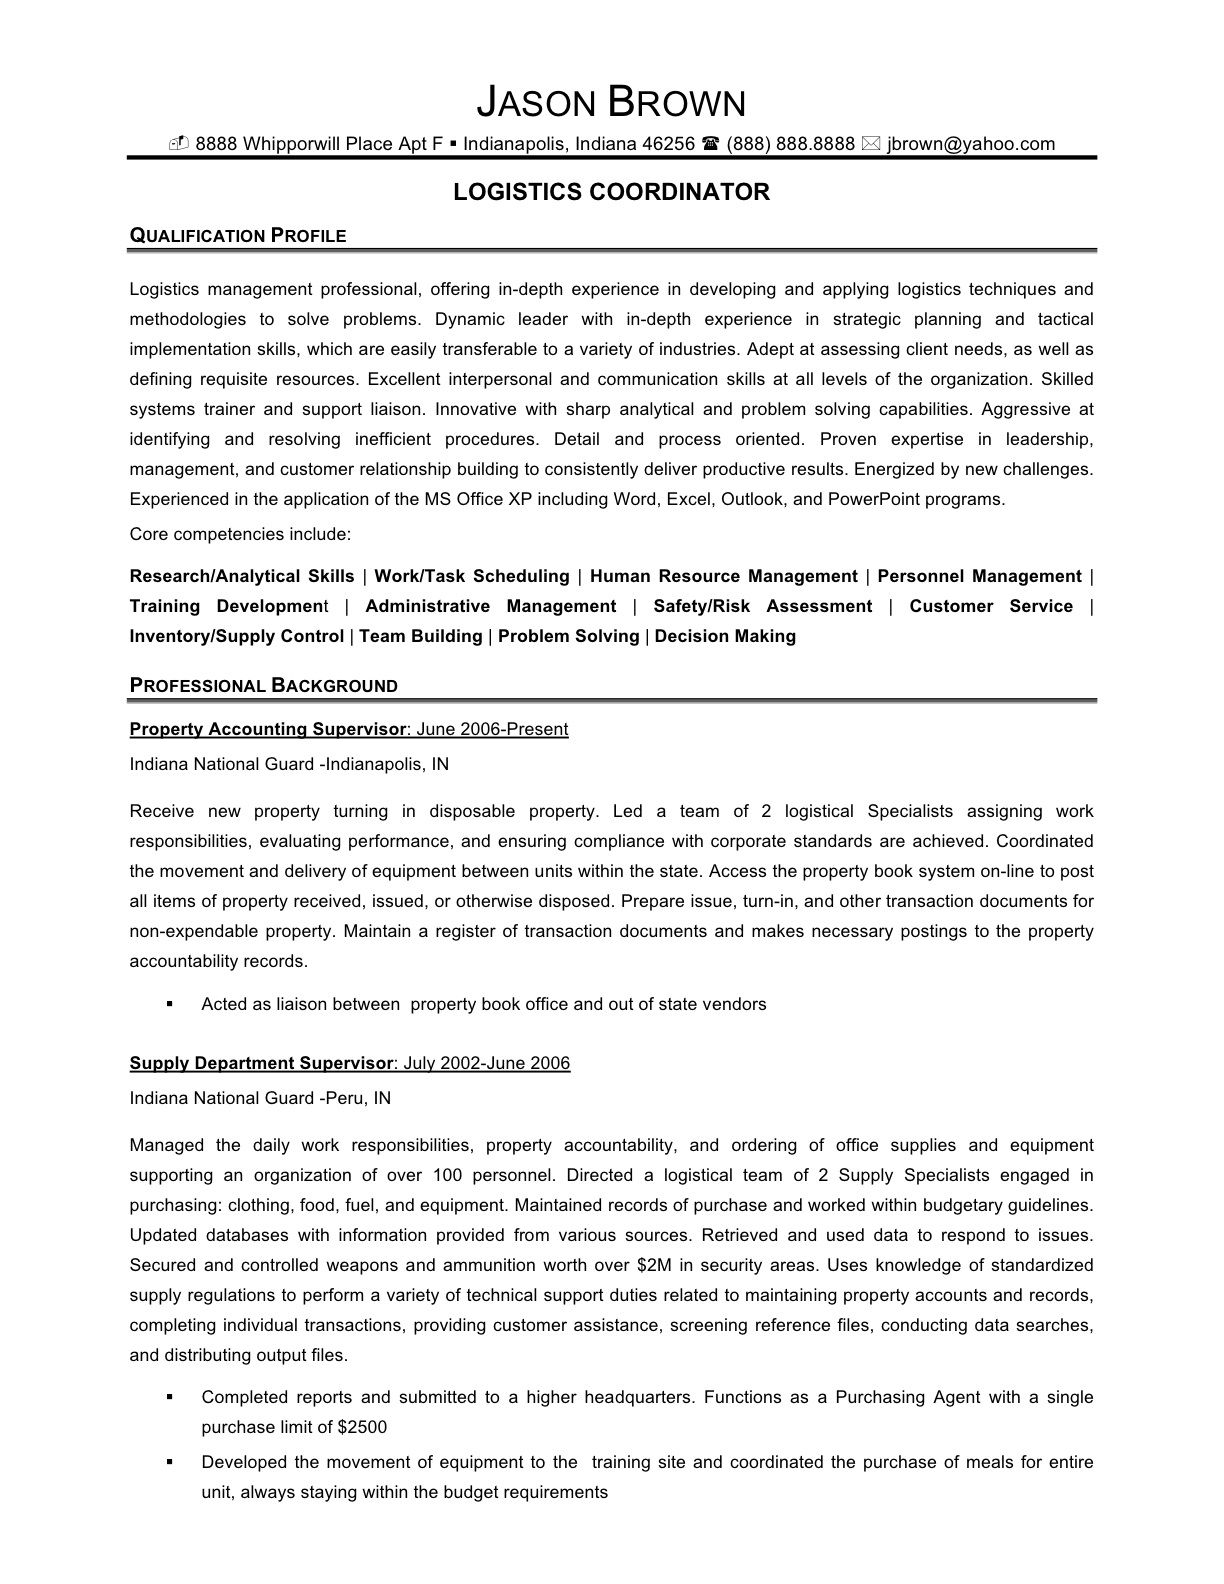 Resume Summary Statement Example Senior Logistic Management Resume  Logistics Coordinator1